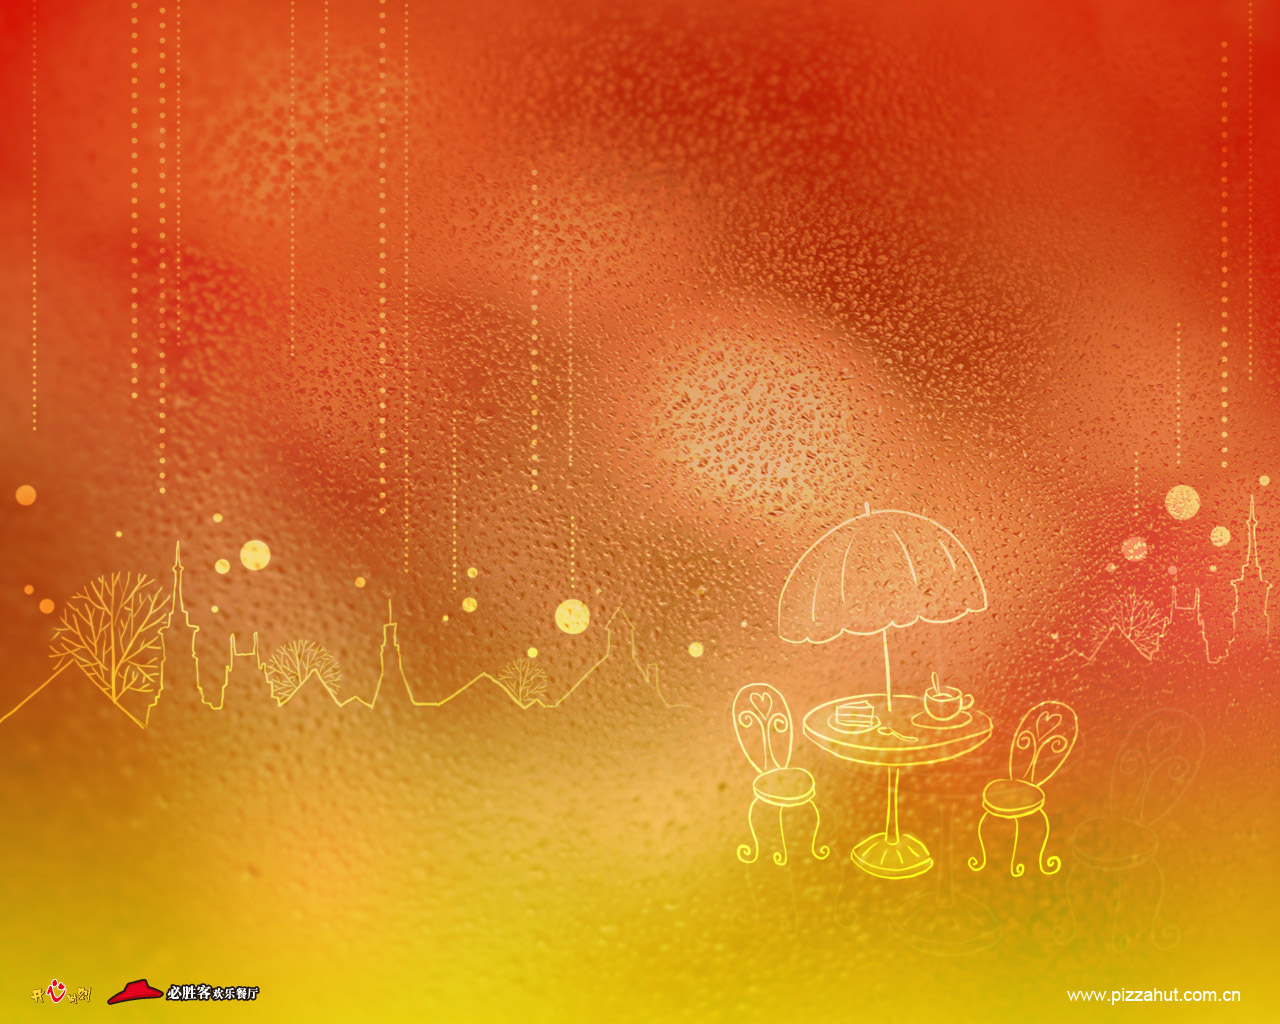 Pizza Hut Wallpaper 8849